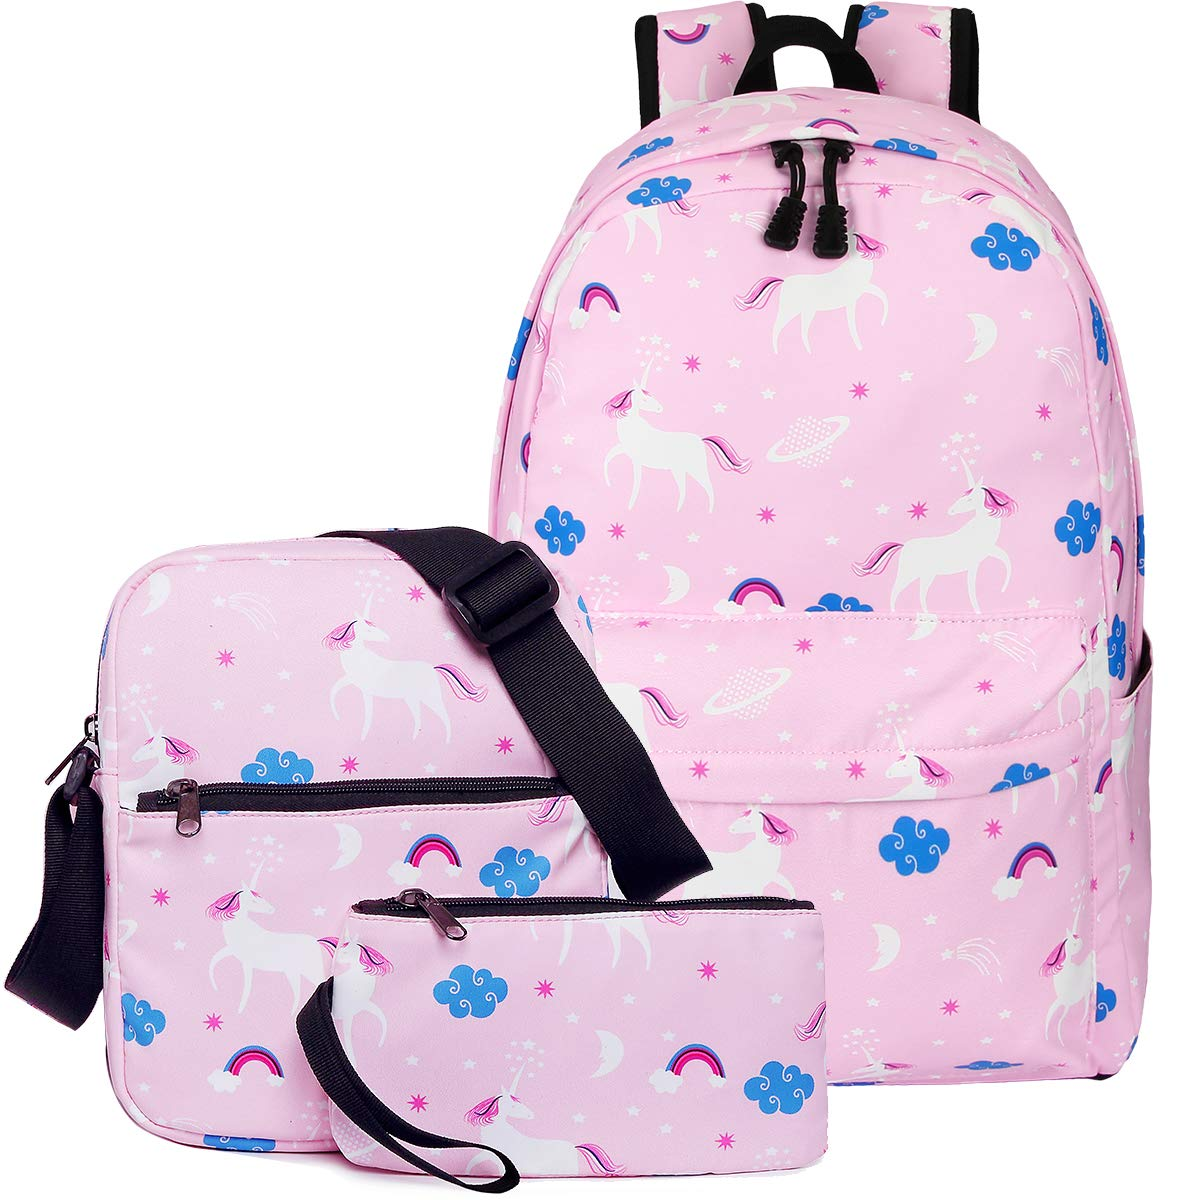 Unicorn Bookbag for Teen Girls, Dreampark School Backpack for Boys and Girls Laptop Bag with Shoulder Bags and Pen Case (Pink)